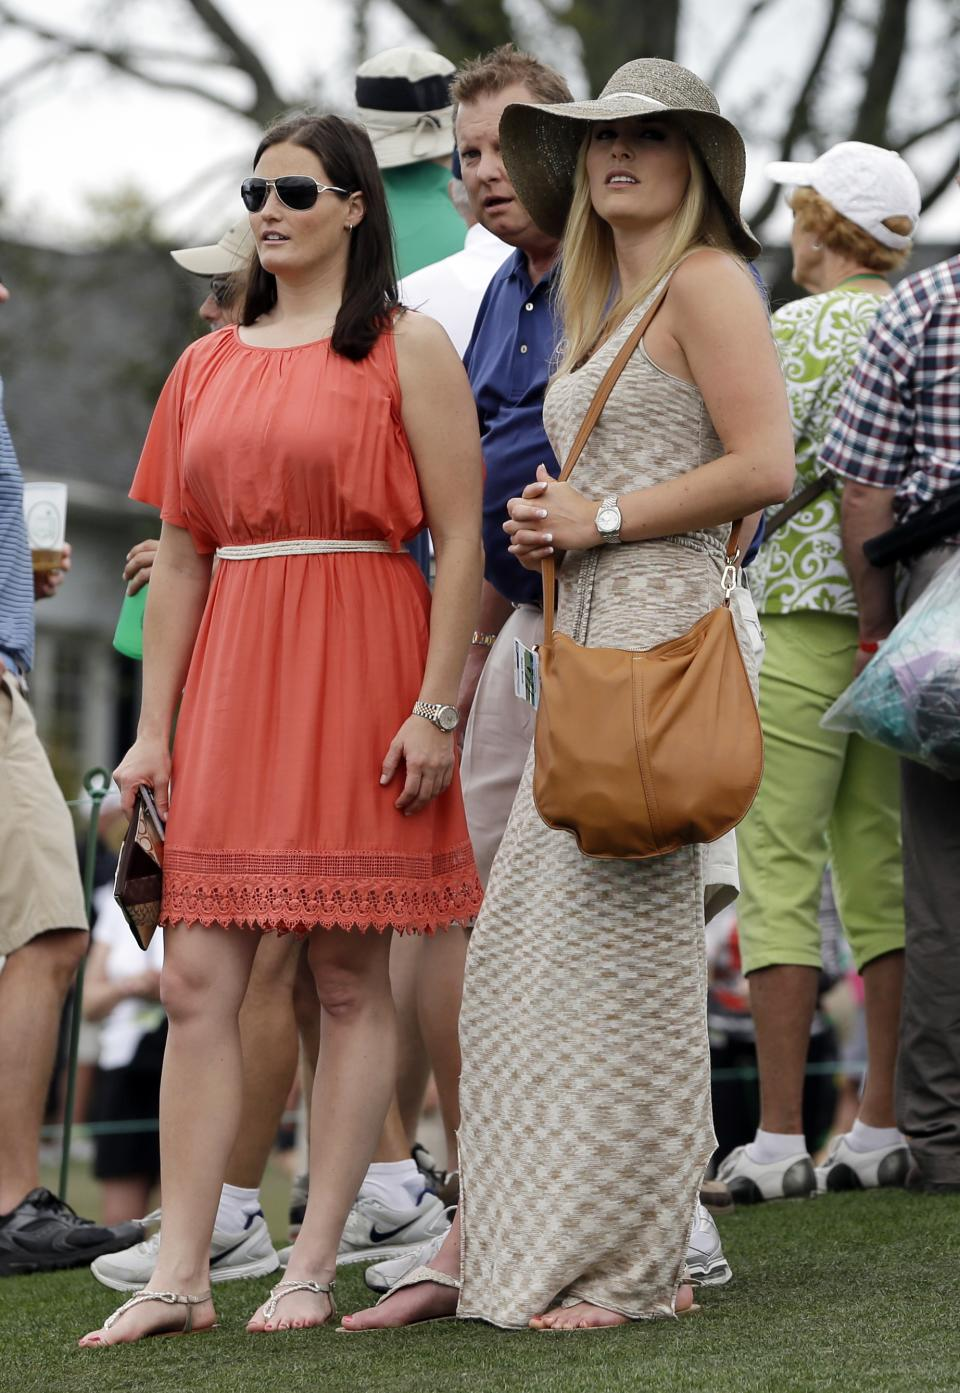 Skier Lindsey Vonn, right, watches Tiger Woods on the ninth hole during the first round of the Masters golf tournament Thursday, April 11, 2013, in Augusta, Ga. (AP Photo/Darron Cummings)